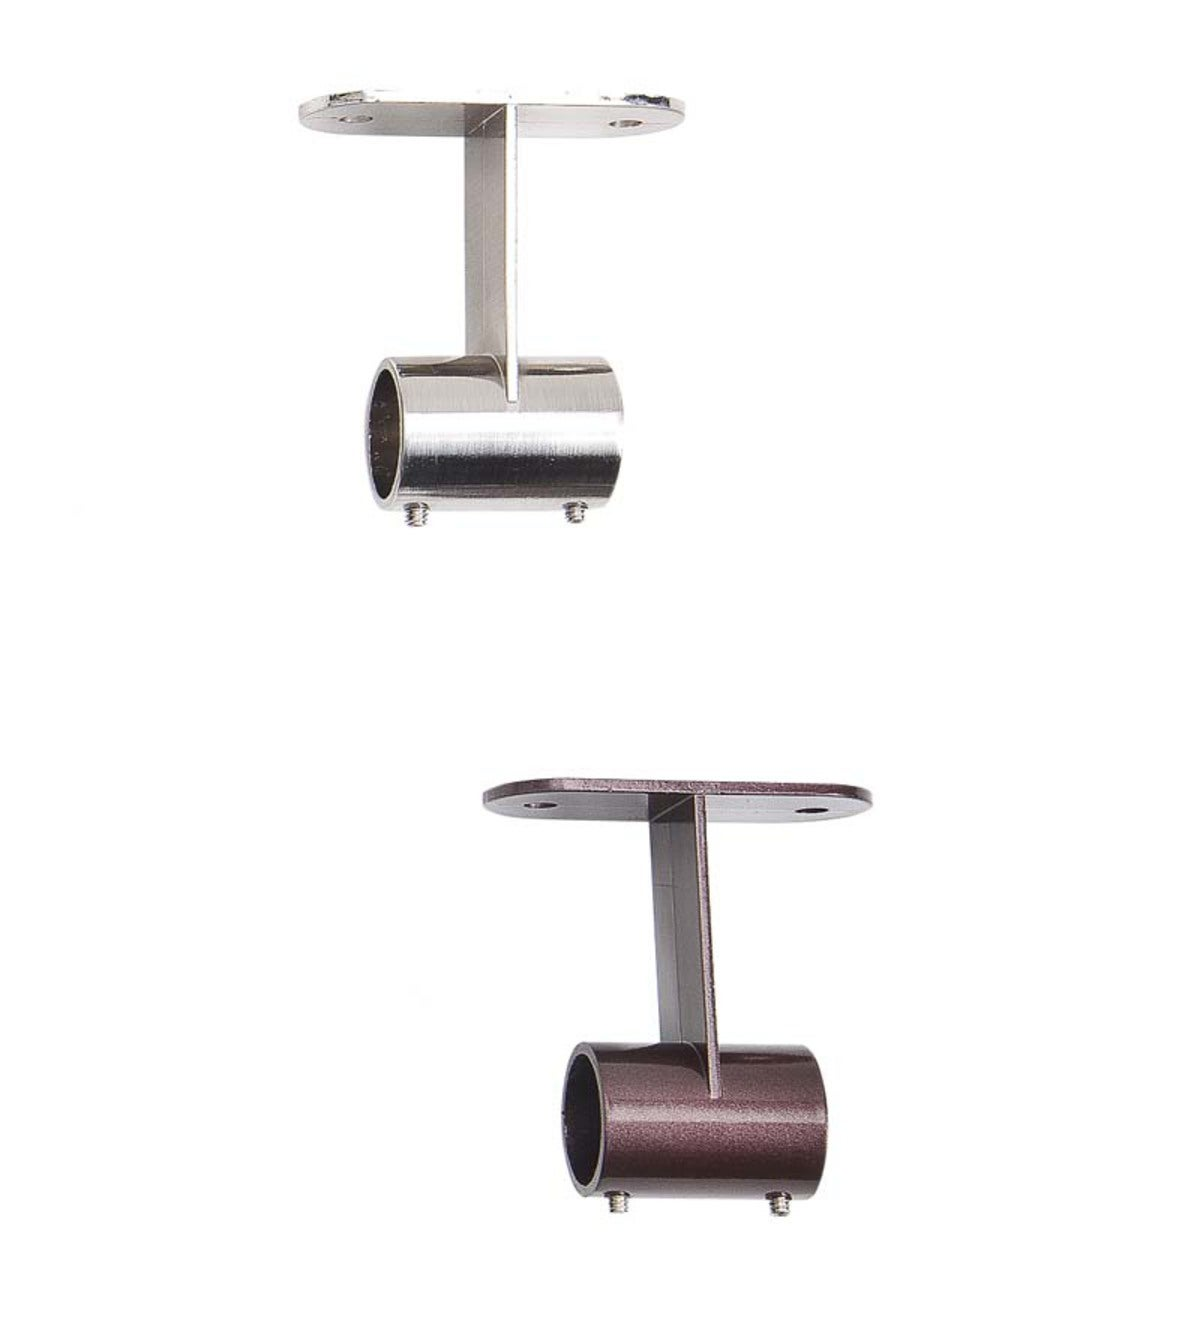 Stainless Steel Indoor Or Outdoor Tension Curtain Rod Ceiling Mount Joiner